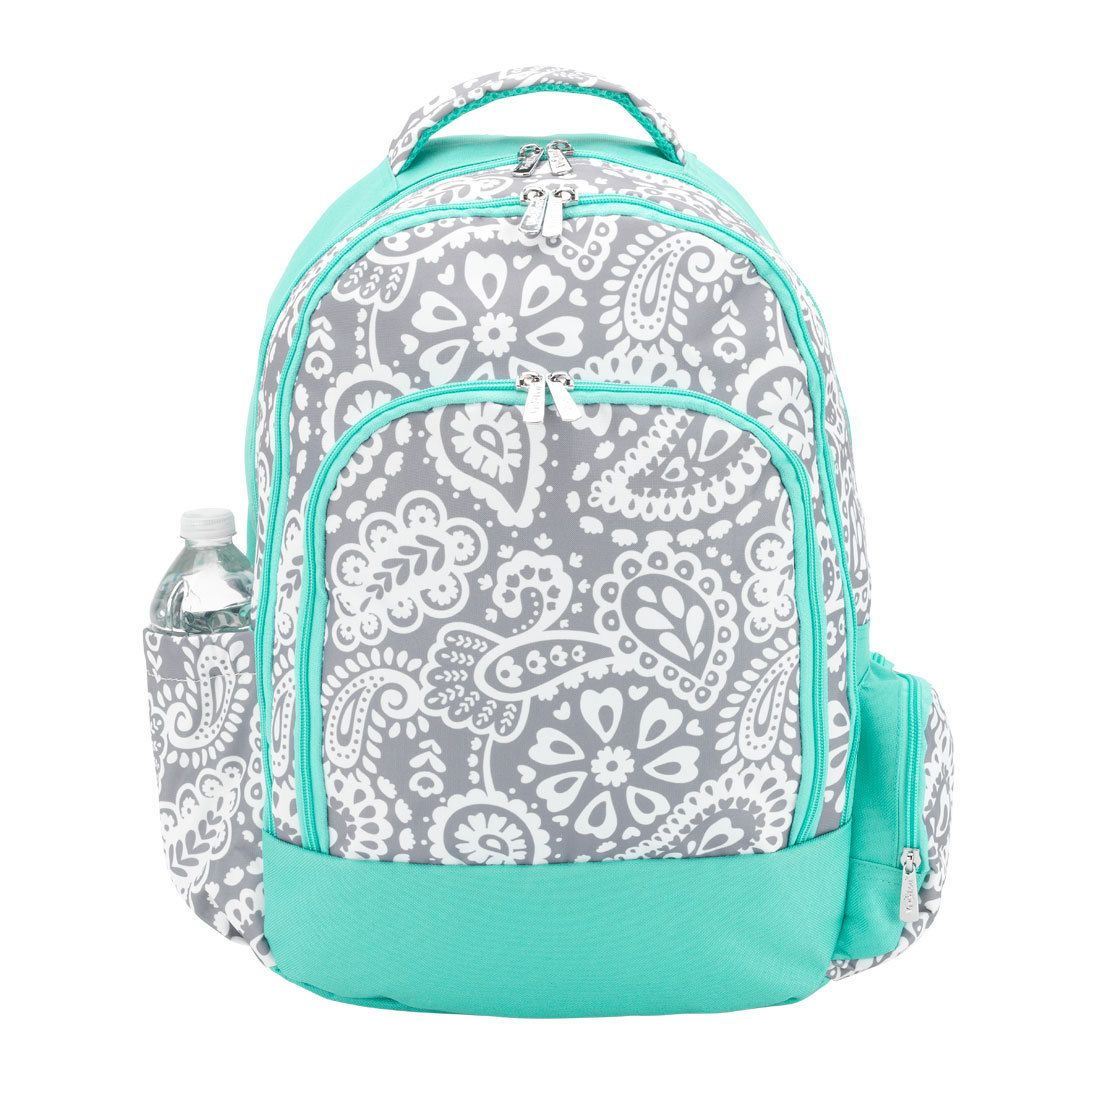 Parker Paisley Monogram Grey and Mint Backpack Back To School Girls Backpack  Book bag by CentralBoutique on Etsy 334adabee609b